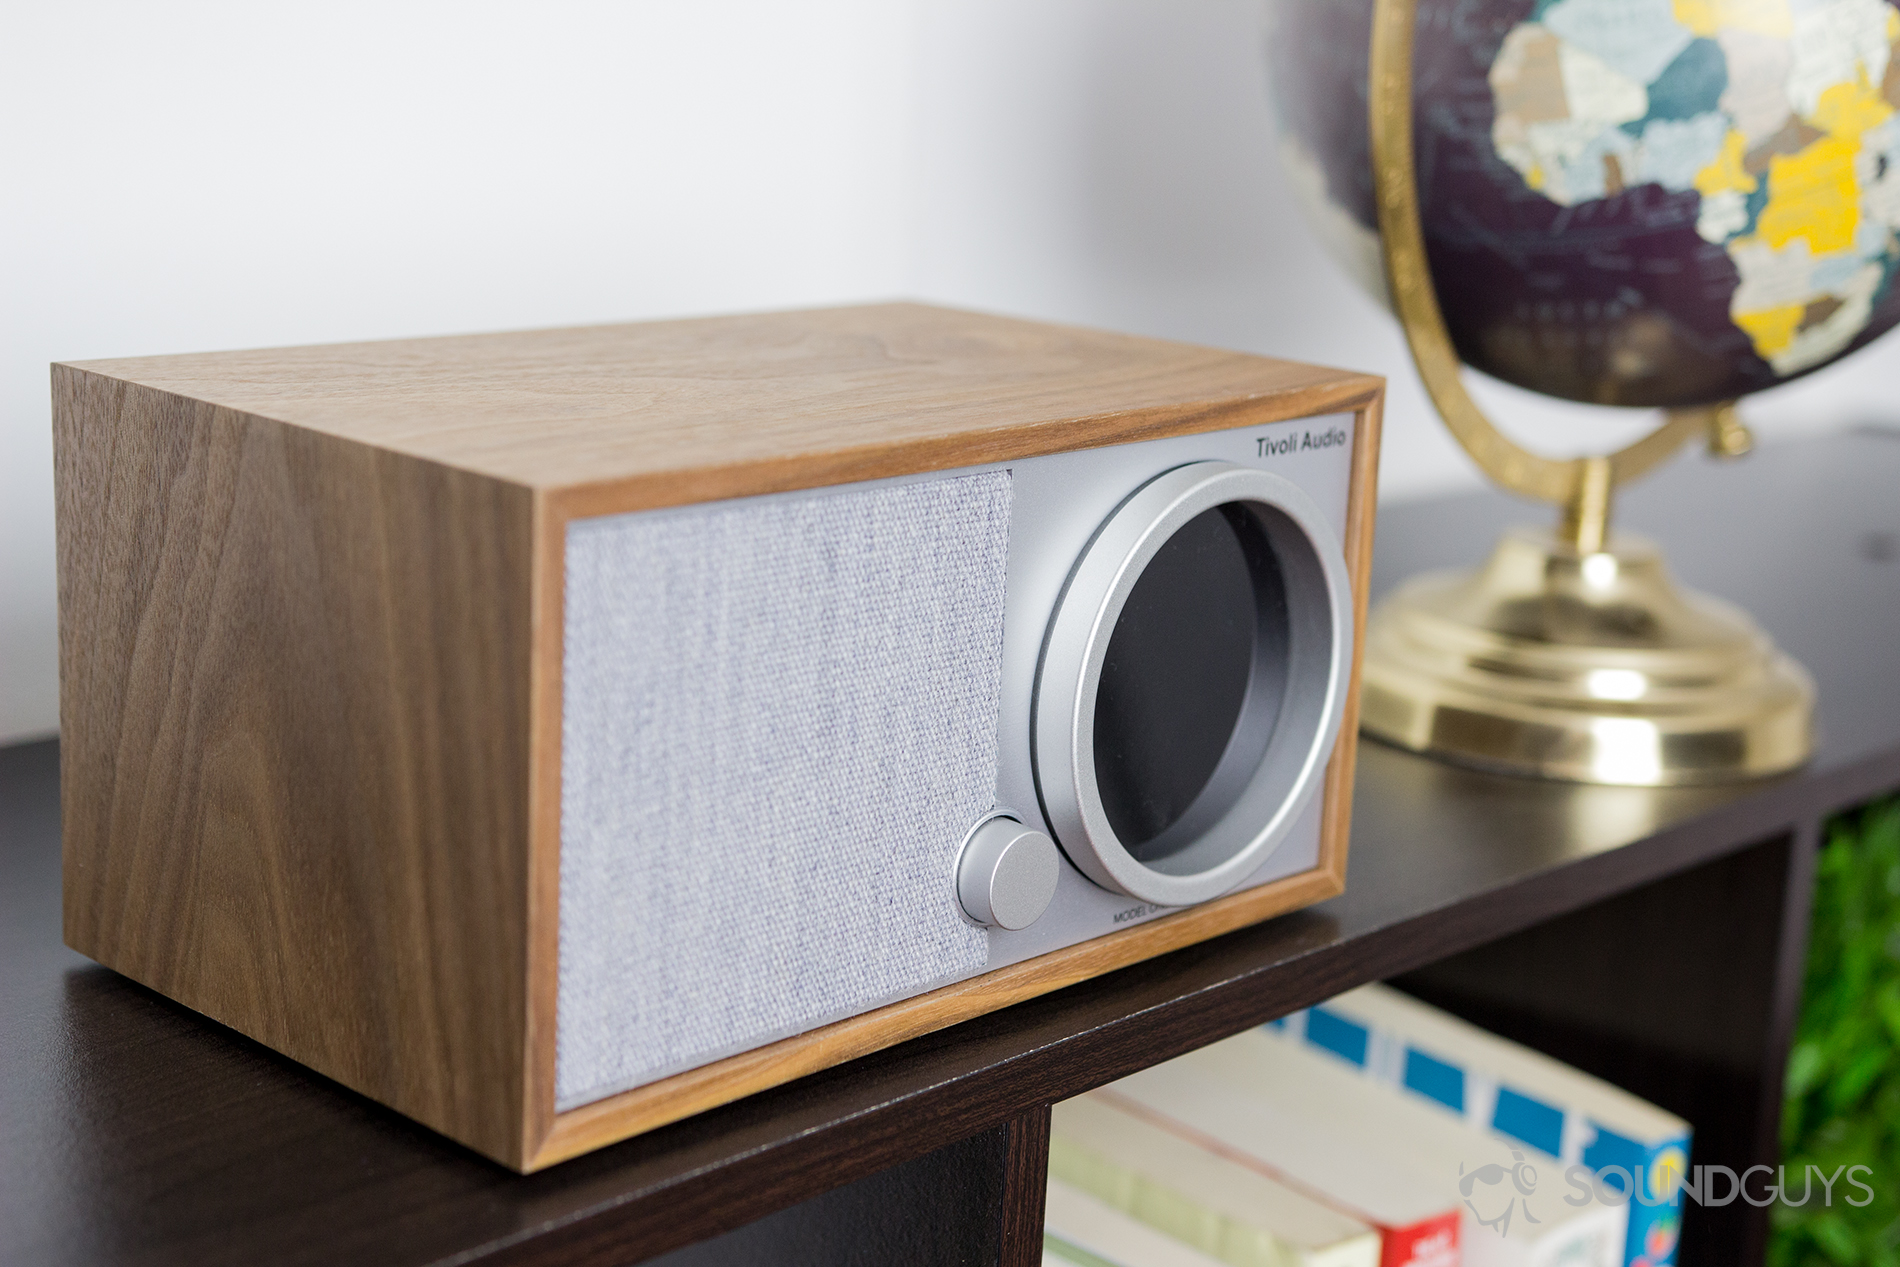 Tivoli Audio Model One Alternative Tivoli Audio Model One Digital Review Soundguys